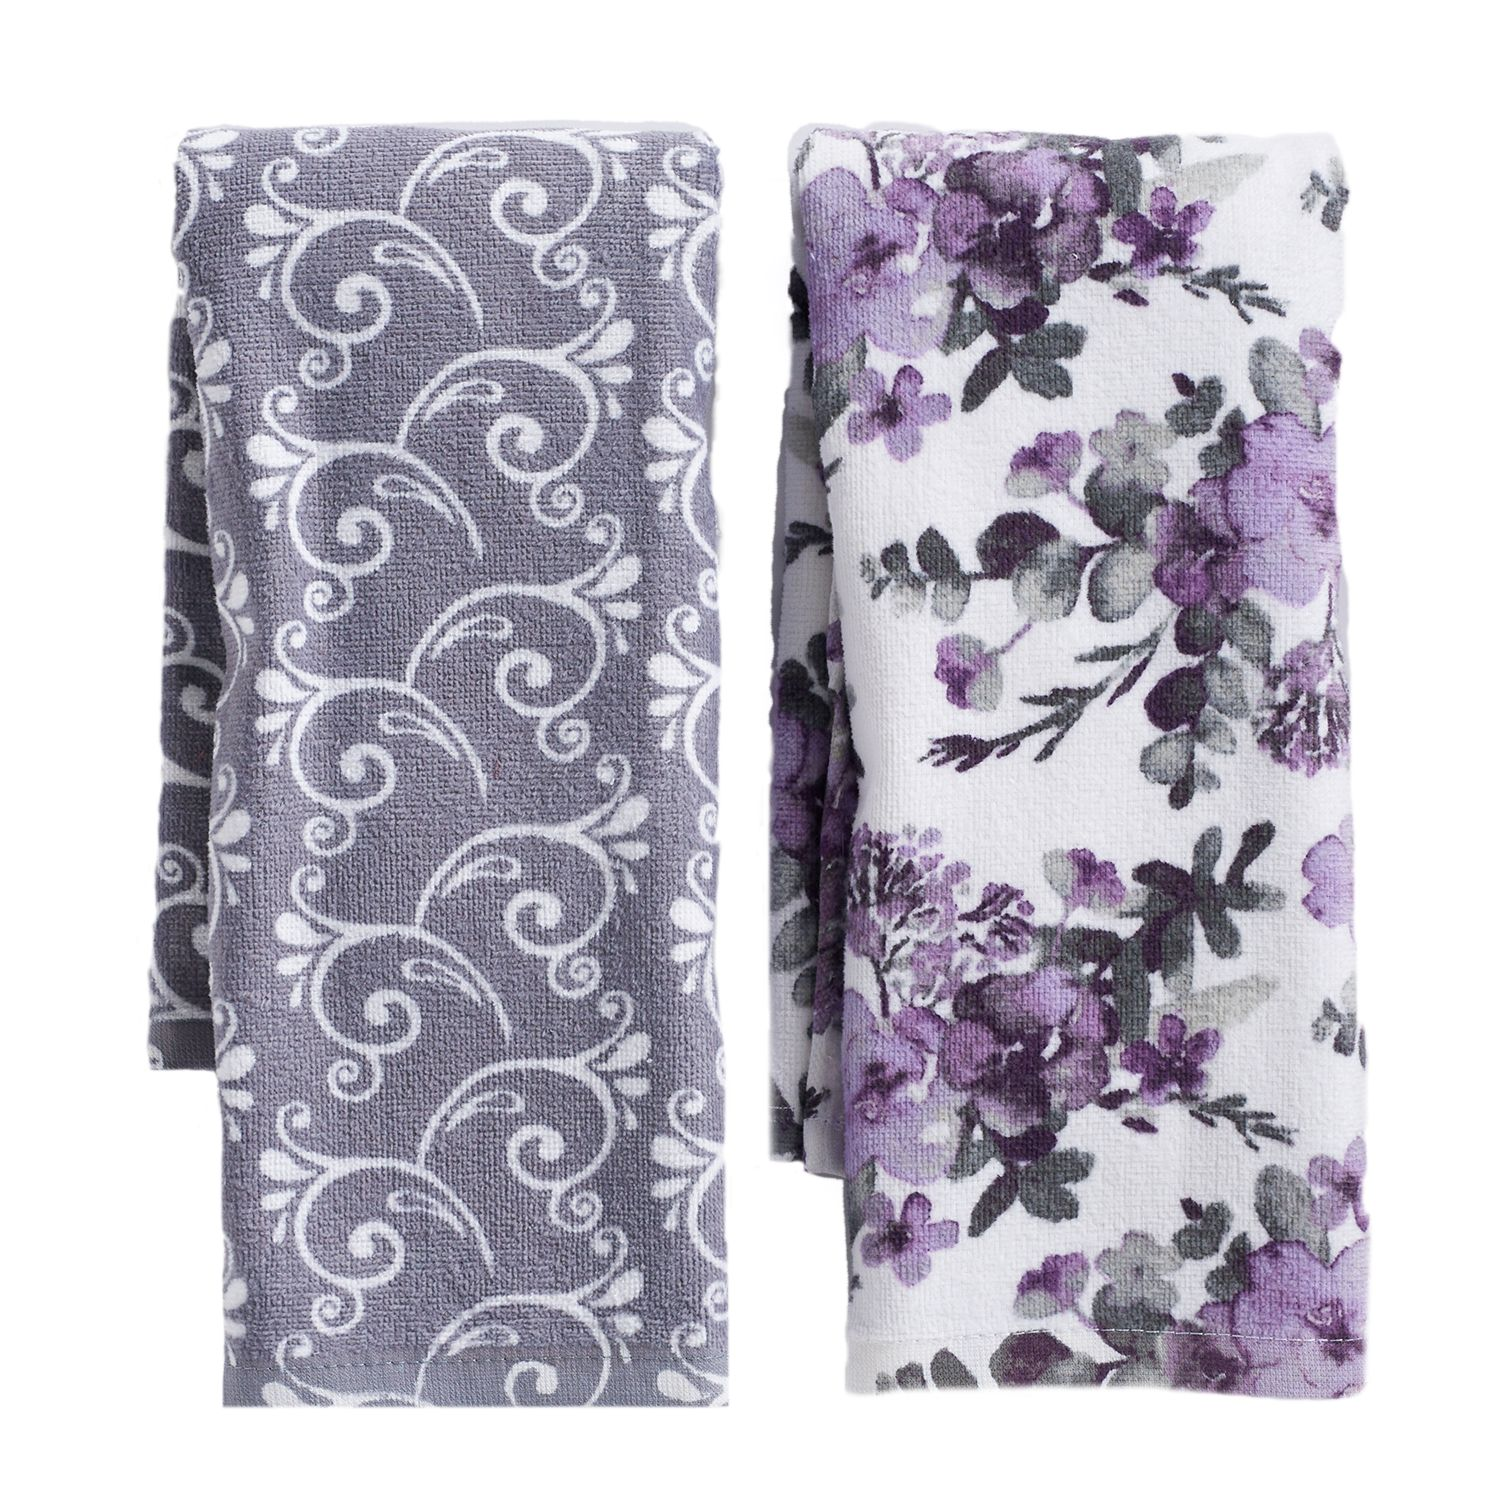 Mainstreet Floral Pattern Kitchen Towel 2 Pack